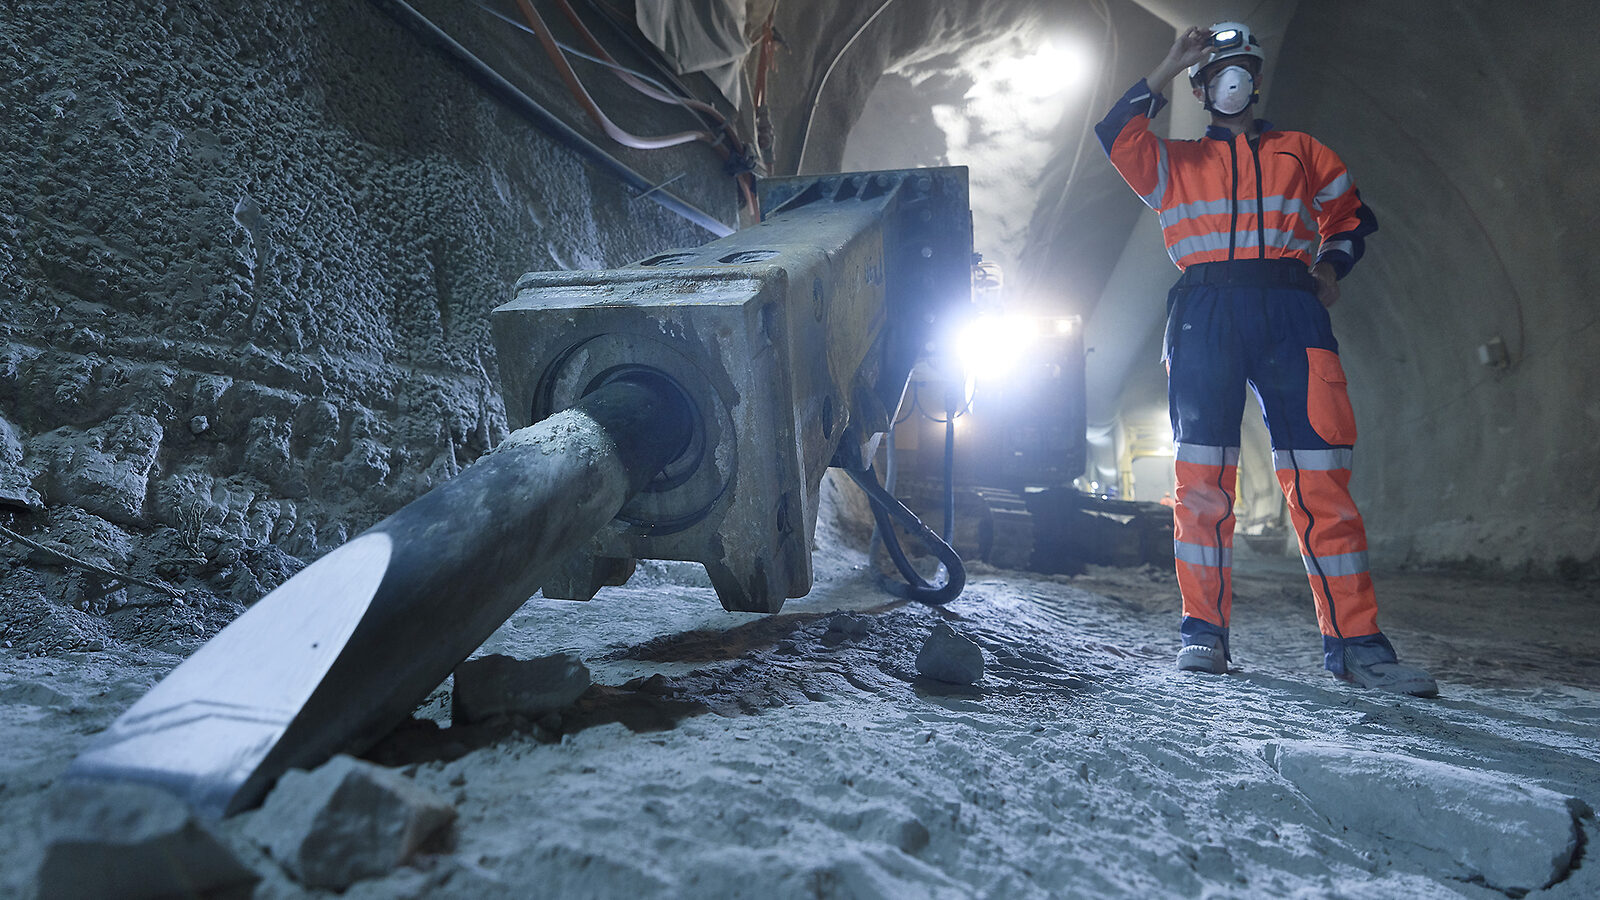 Photographer Samuel Hertzog, in an orange construction-site uniform, stands among heavy equipment in the tunnel